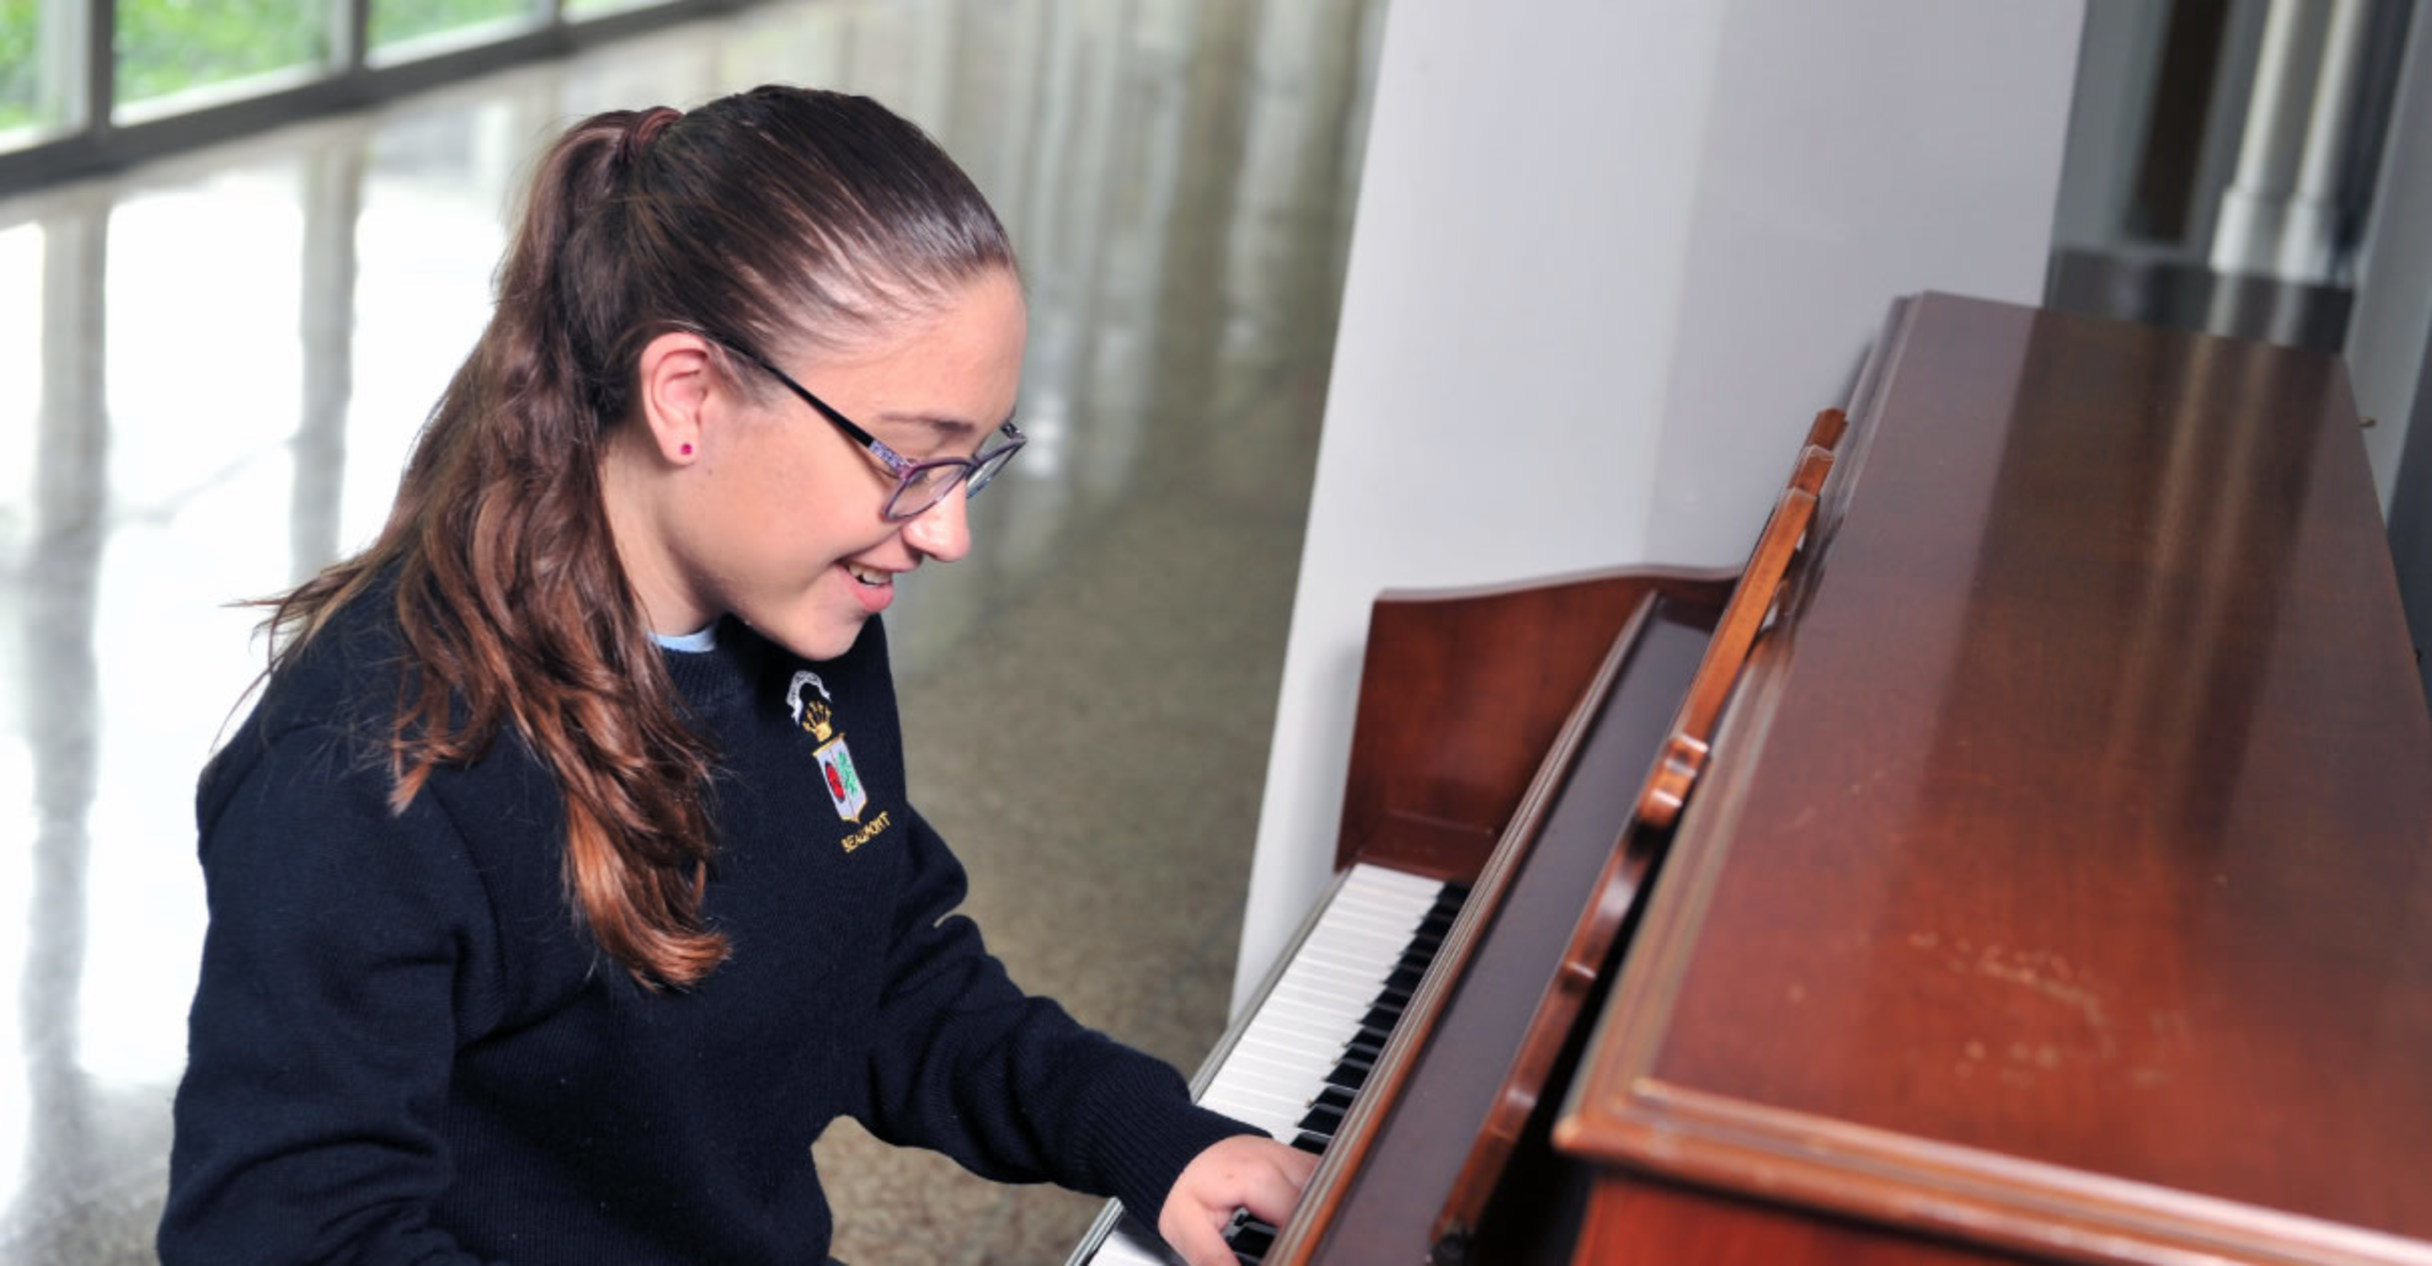 Beaumont school student playing piano